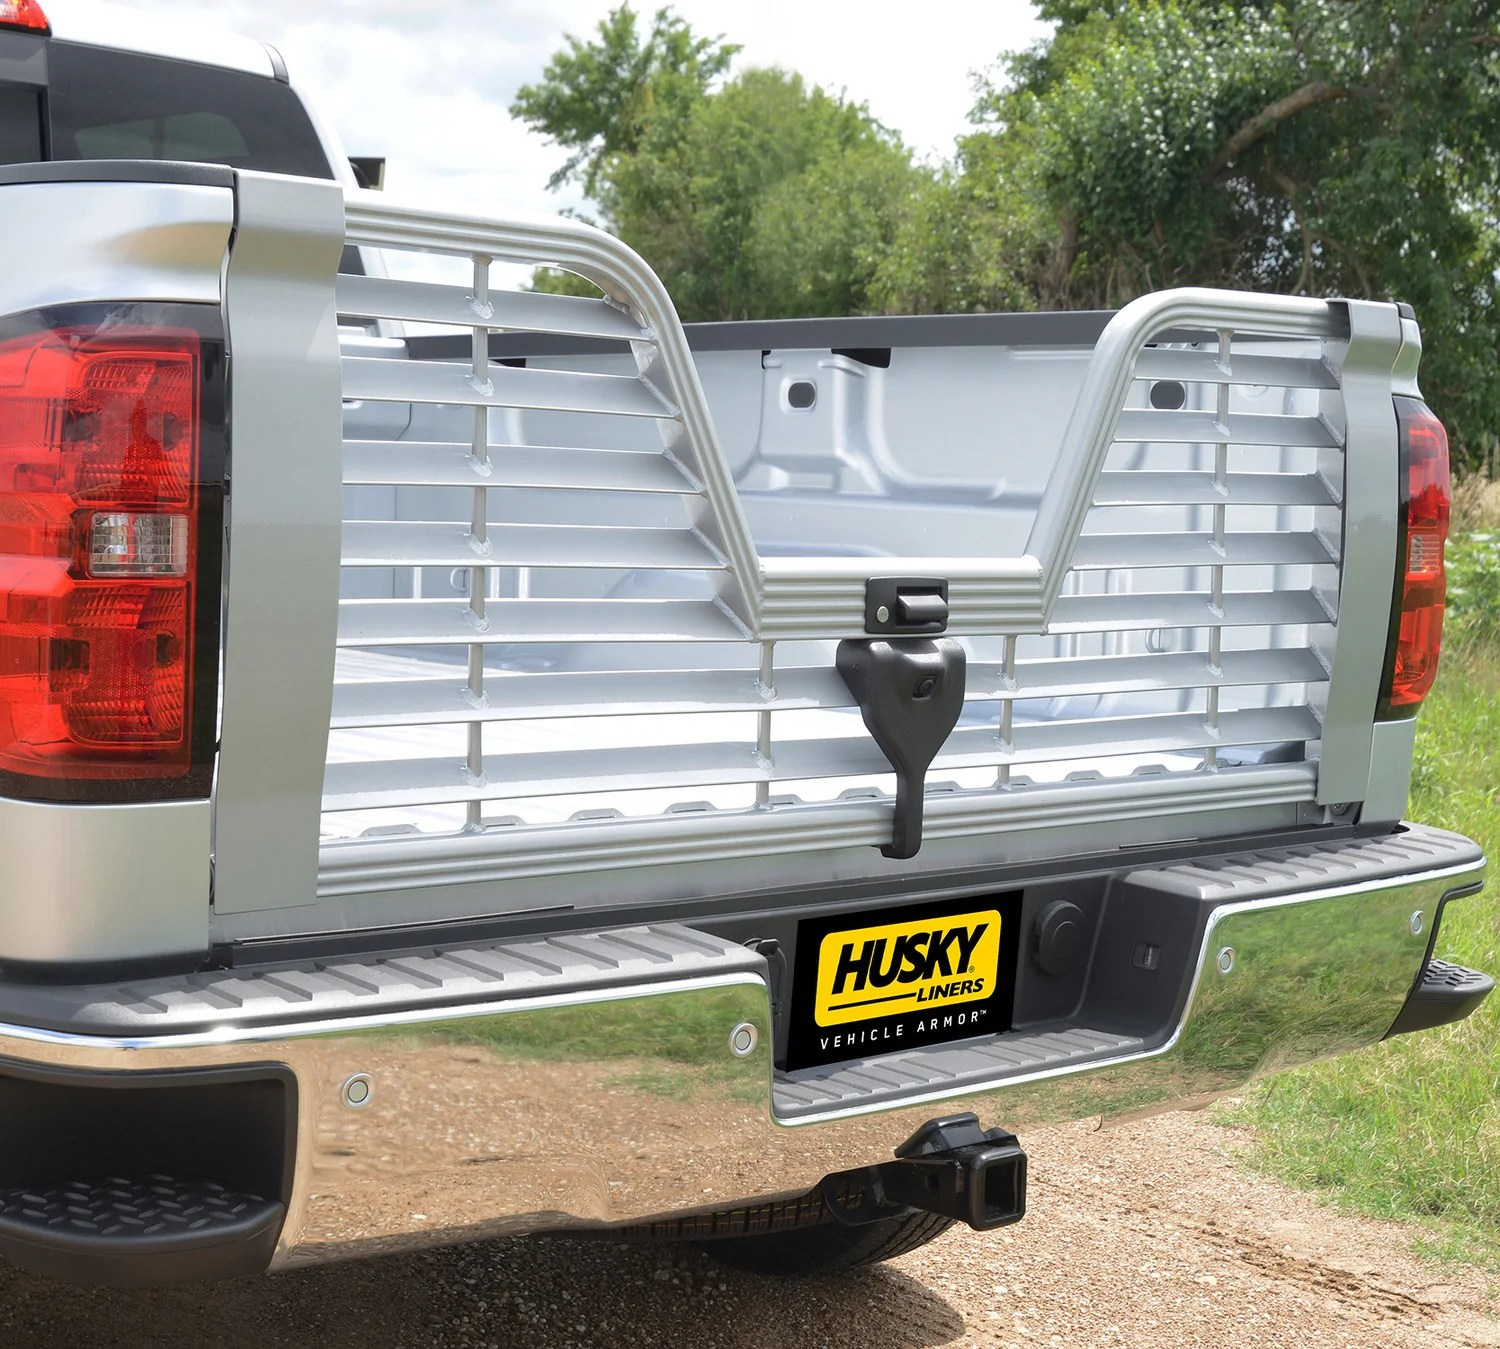 husky liners 5th wheel tailgate for 2015 chevrolet silverado 3500 hd l tonneaucovered com [ 1500 x 1349 Pixel ]